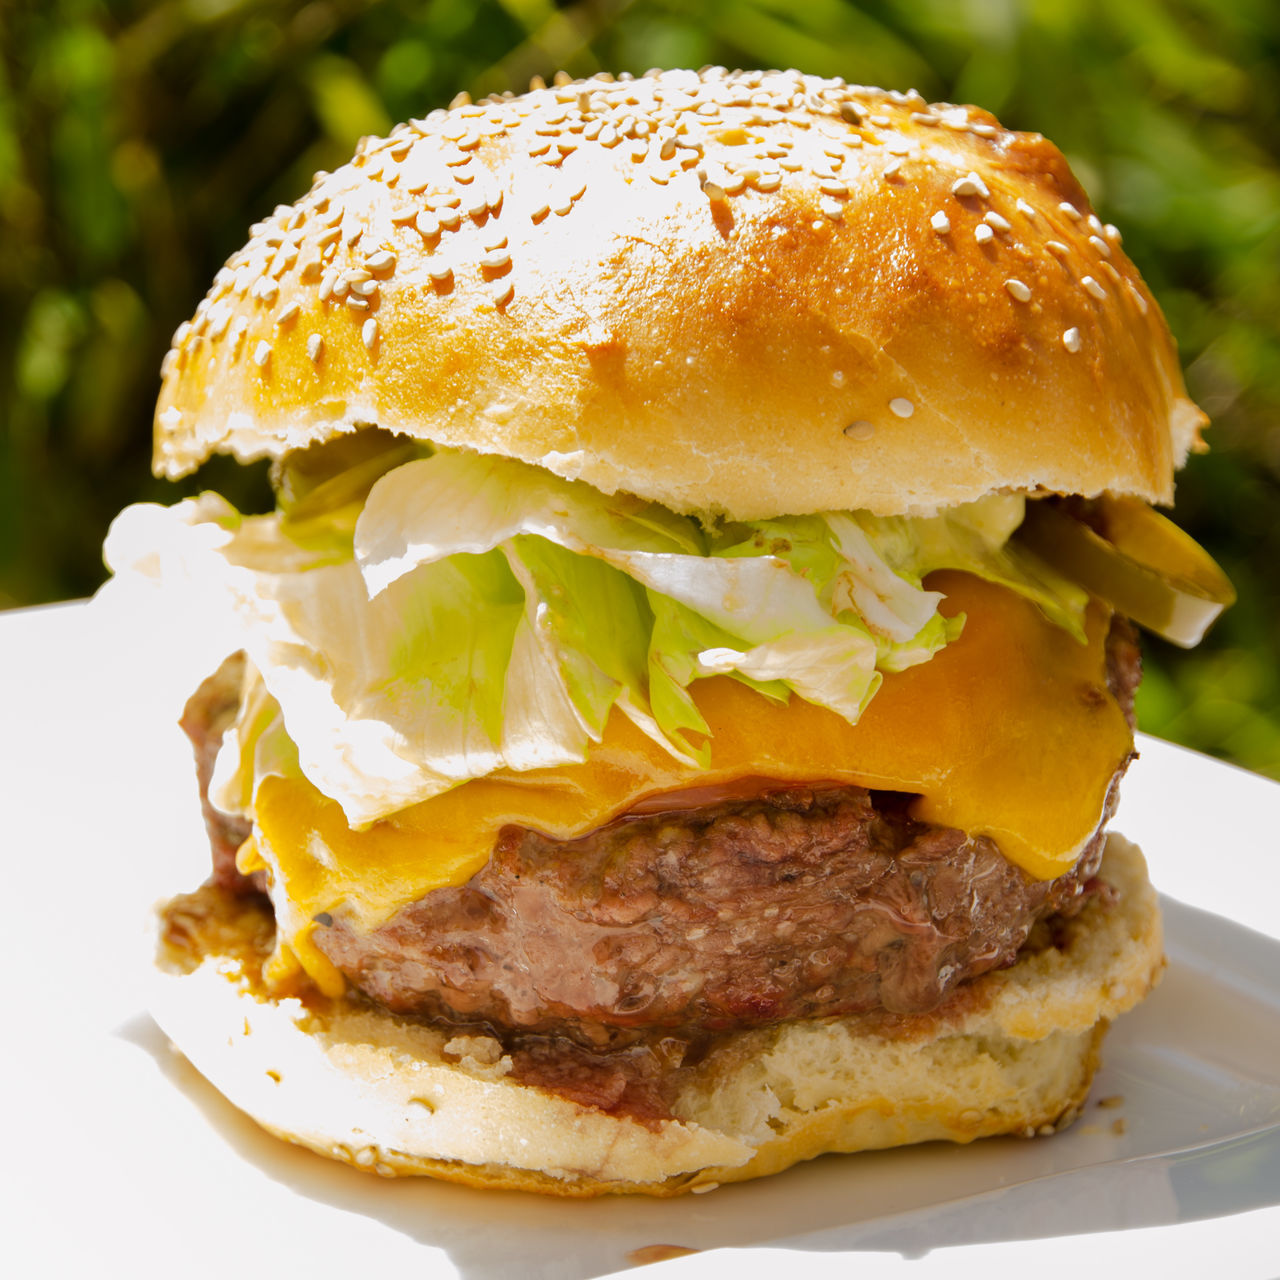 selfmade burger Beef Bread Bun Burger Cheese CheeseBurger Close-up Day Fast Food Focus On Foreground Food Food And Drink Freshness Hamburger Indoors  Lettuce Meat No People Plate Ready-to-eat Selfmade Selfmade Food Sesame Unhealthy Eating Vegetable